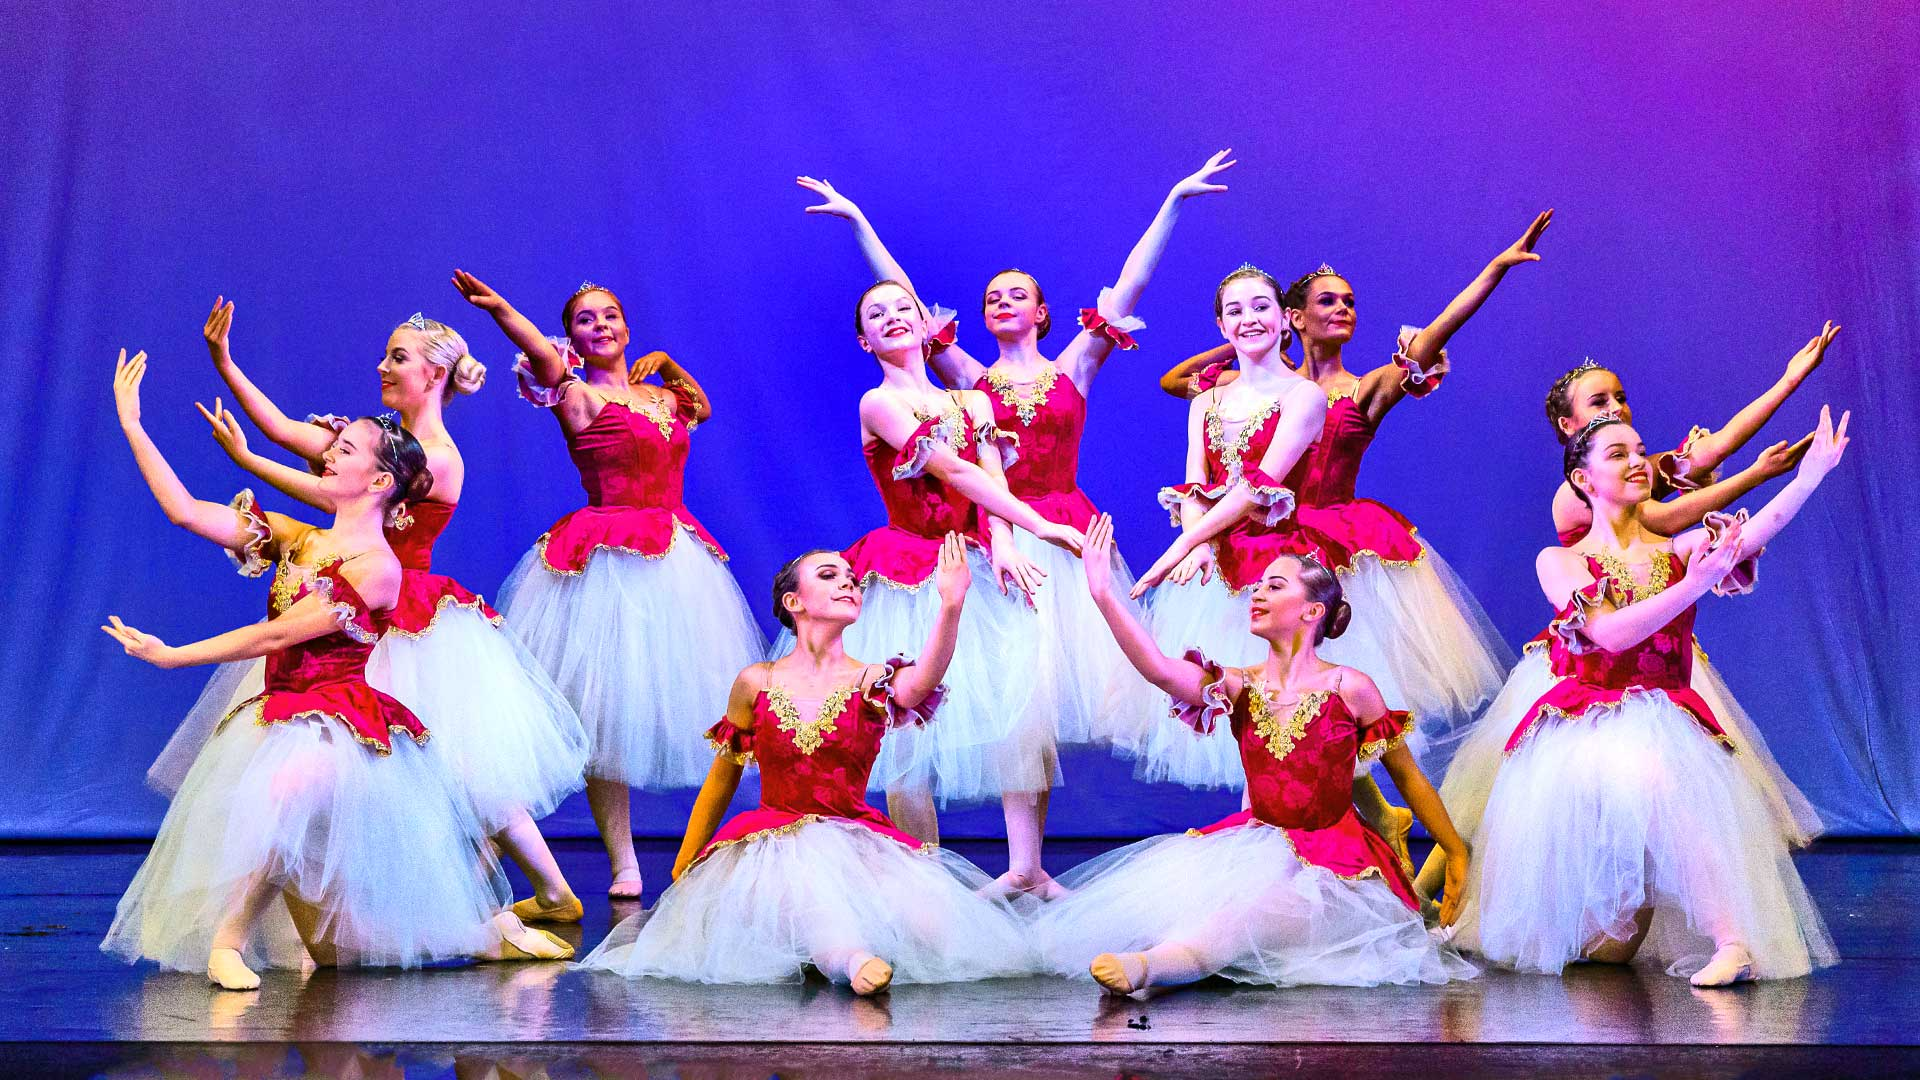 dancers in romantic tuts with red bodice